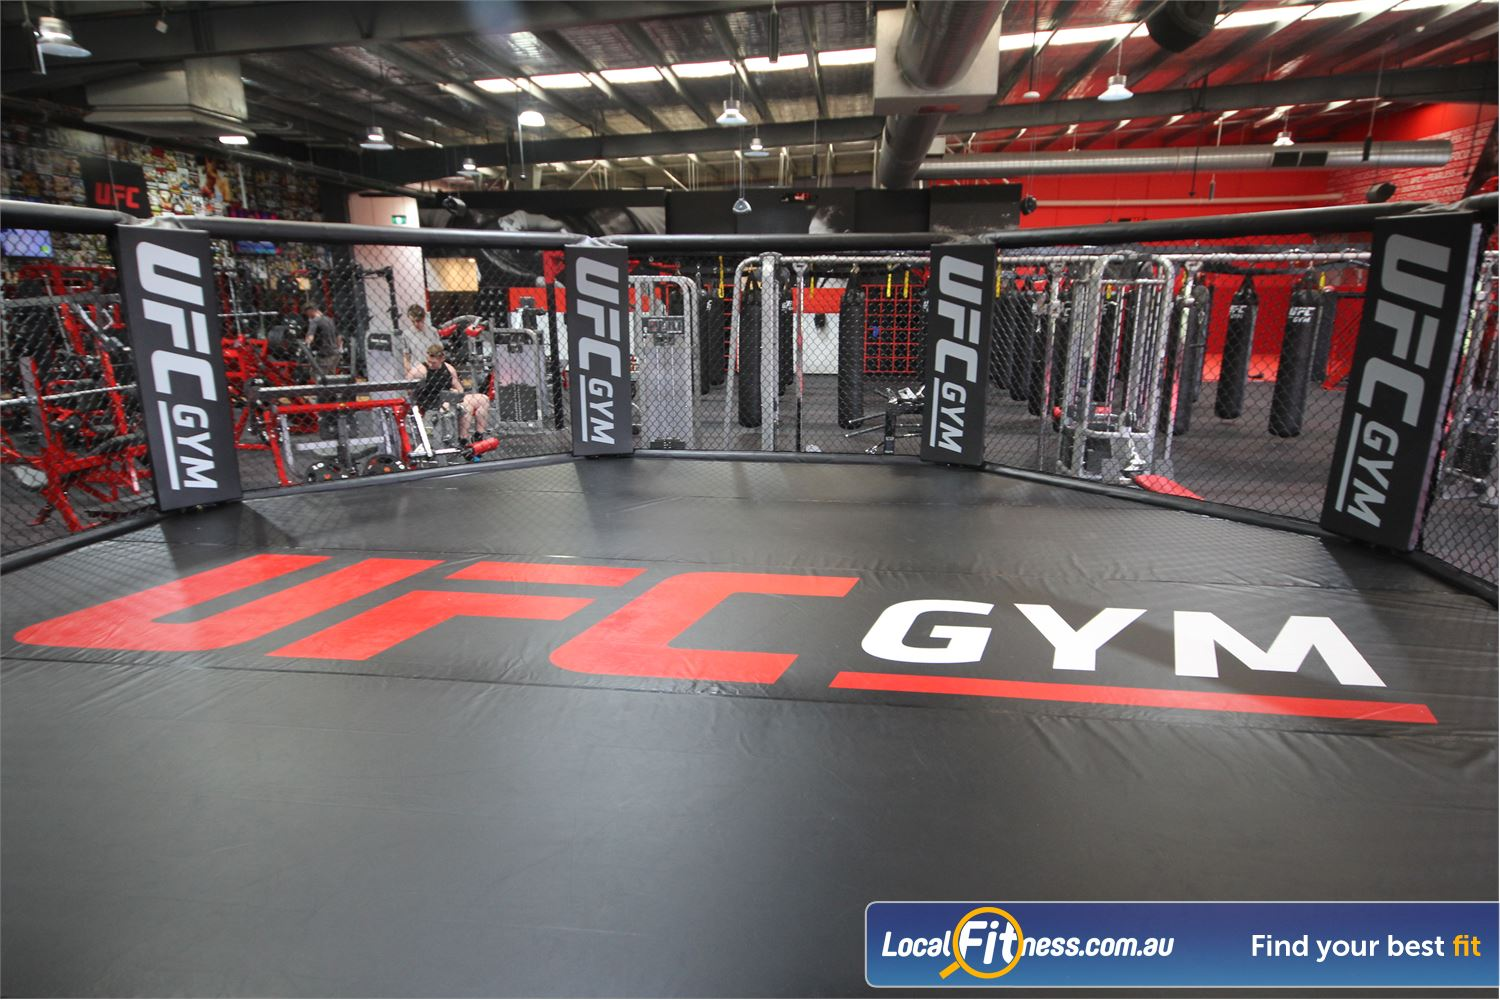 UFC Gym Near Huntingwood Experience the famous UFC Octogan only at UFC GYM Blacktown.